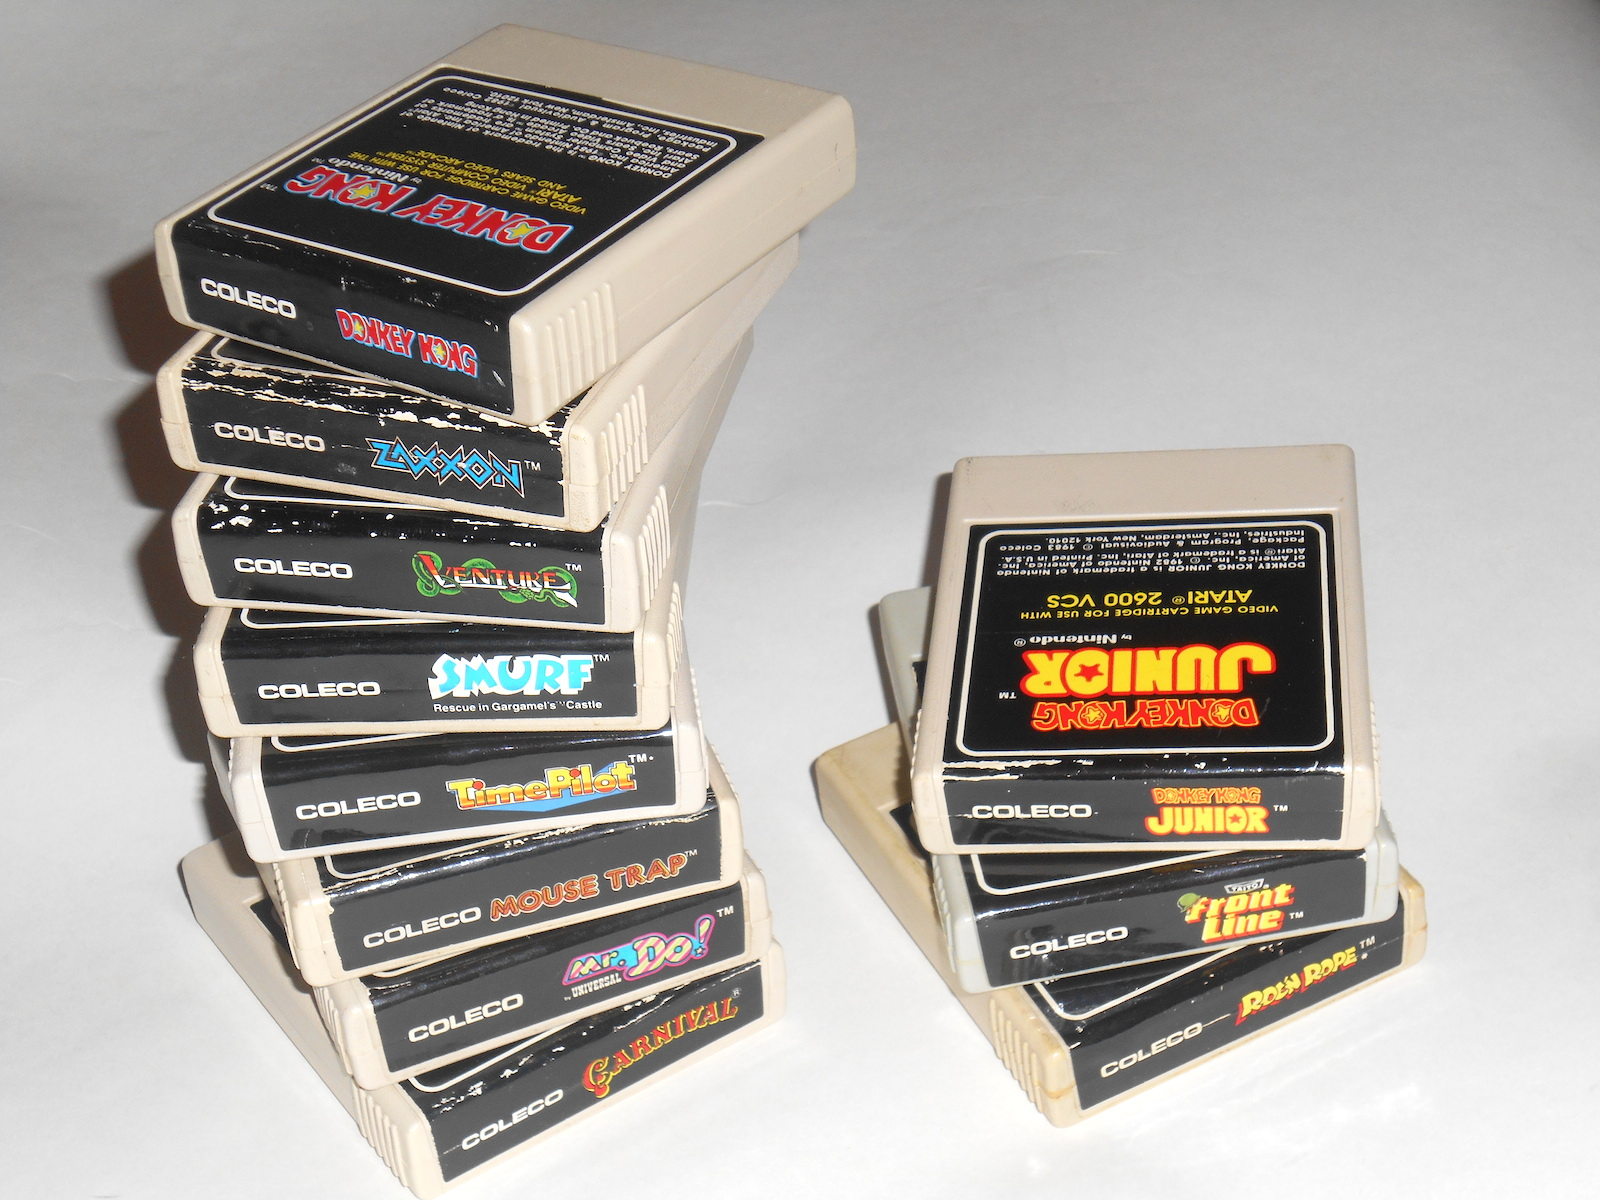 Image result for coleco 2600 carts